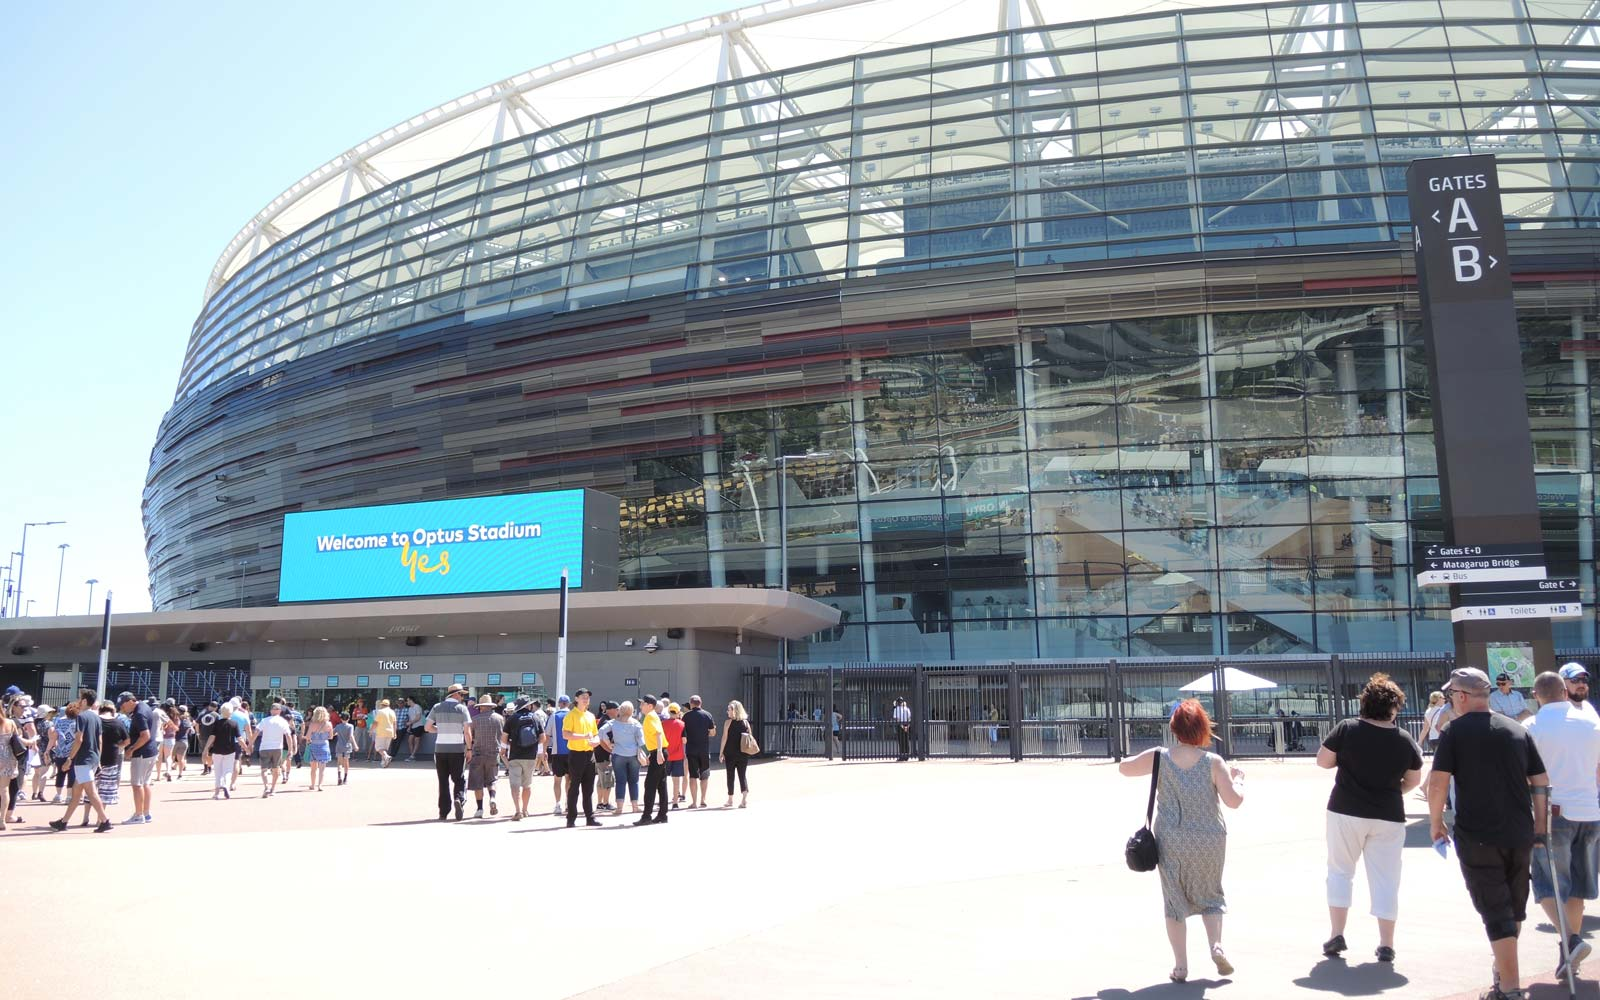 Optus Stadium Entrance. Welcome to Optus Stadium.